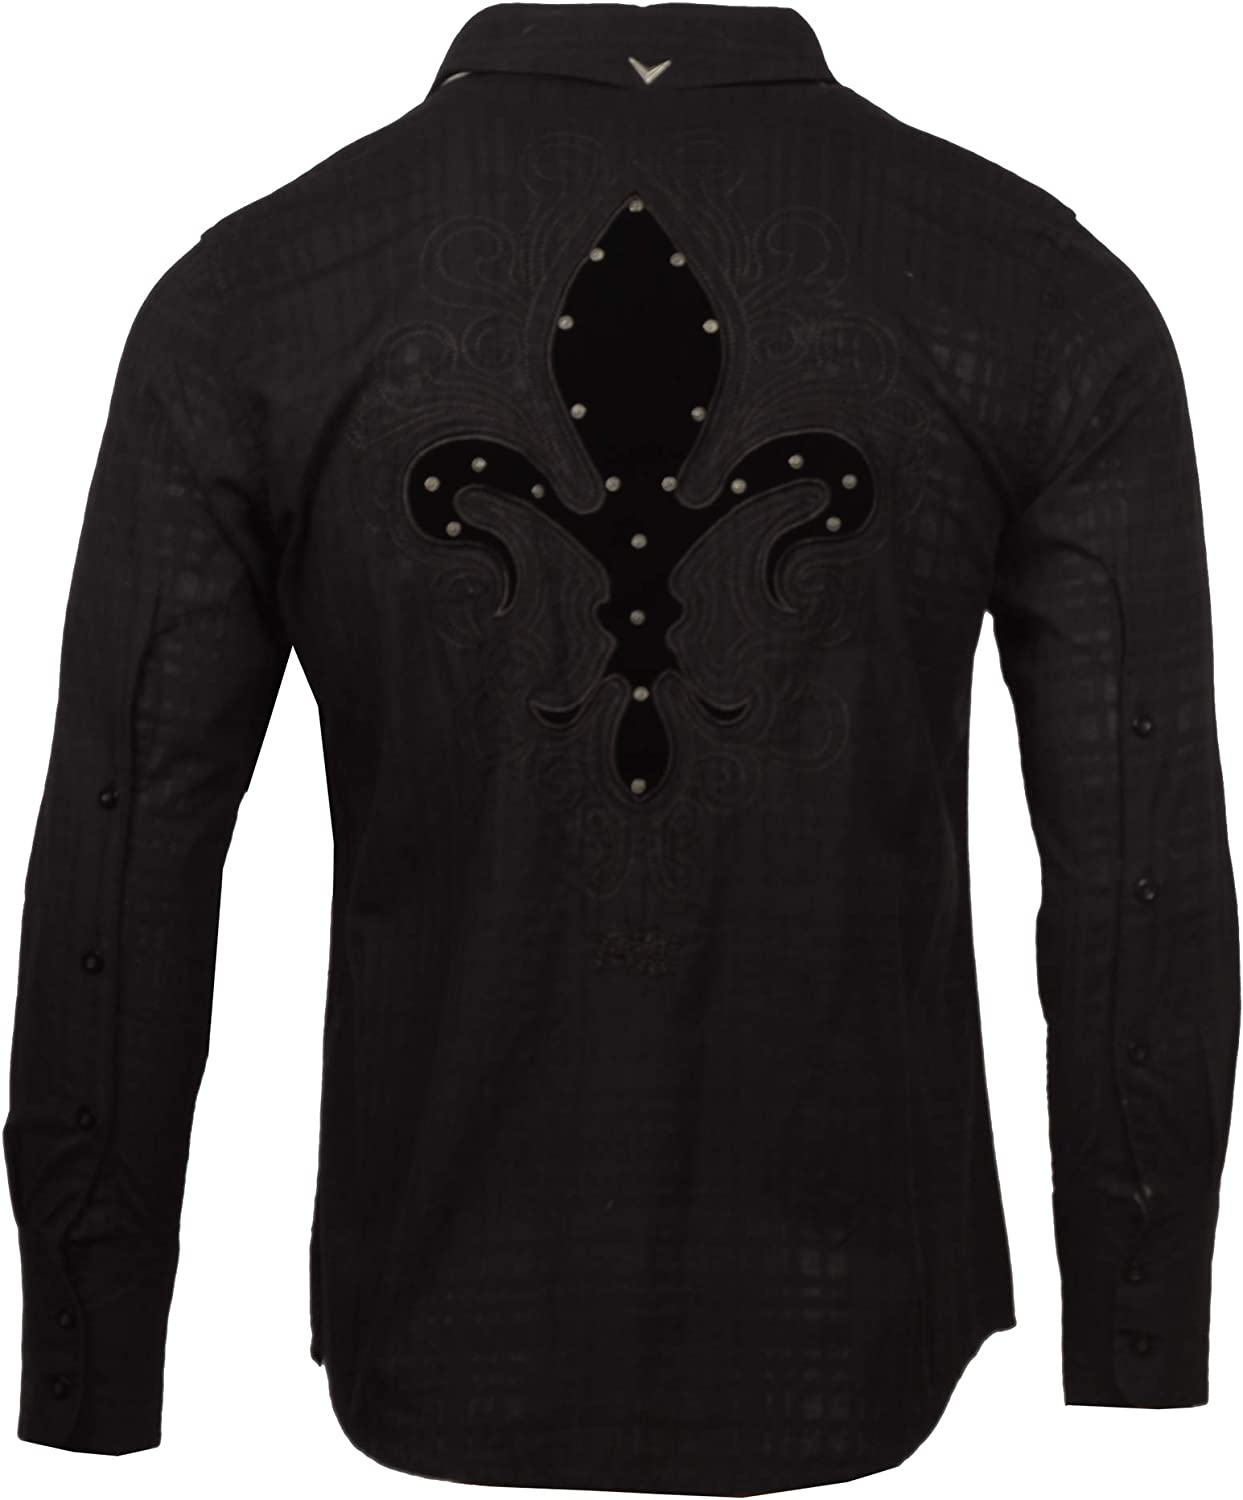 Mens Fleur de Lis Long Sleeve Custom Embroidered Shirt 128B